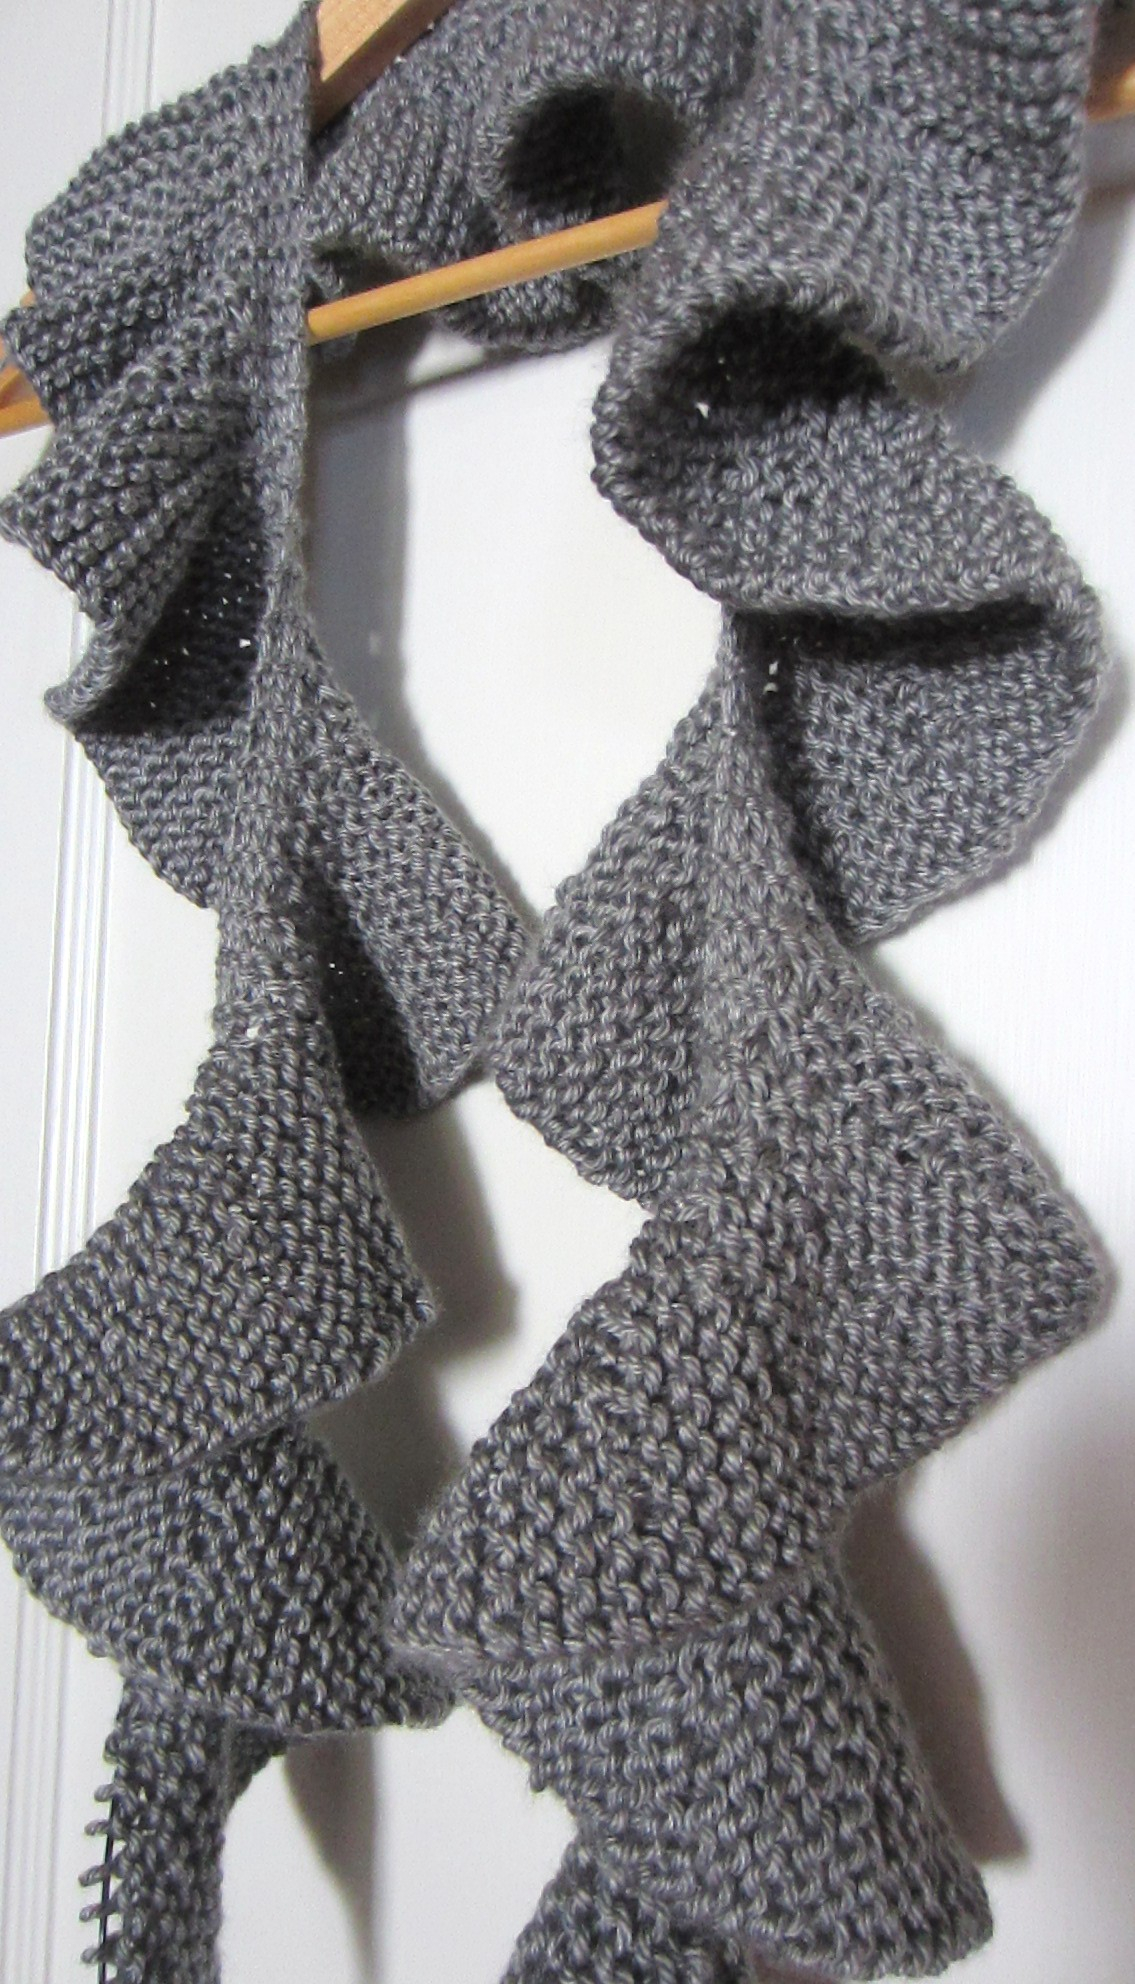 How To Knit A Ruffle Scarf Free Pattern Two Ruffle Scarves Knitting Works In Progress G Ma Ellens